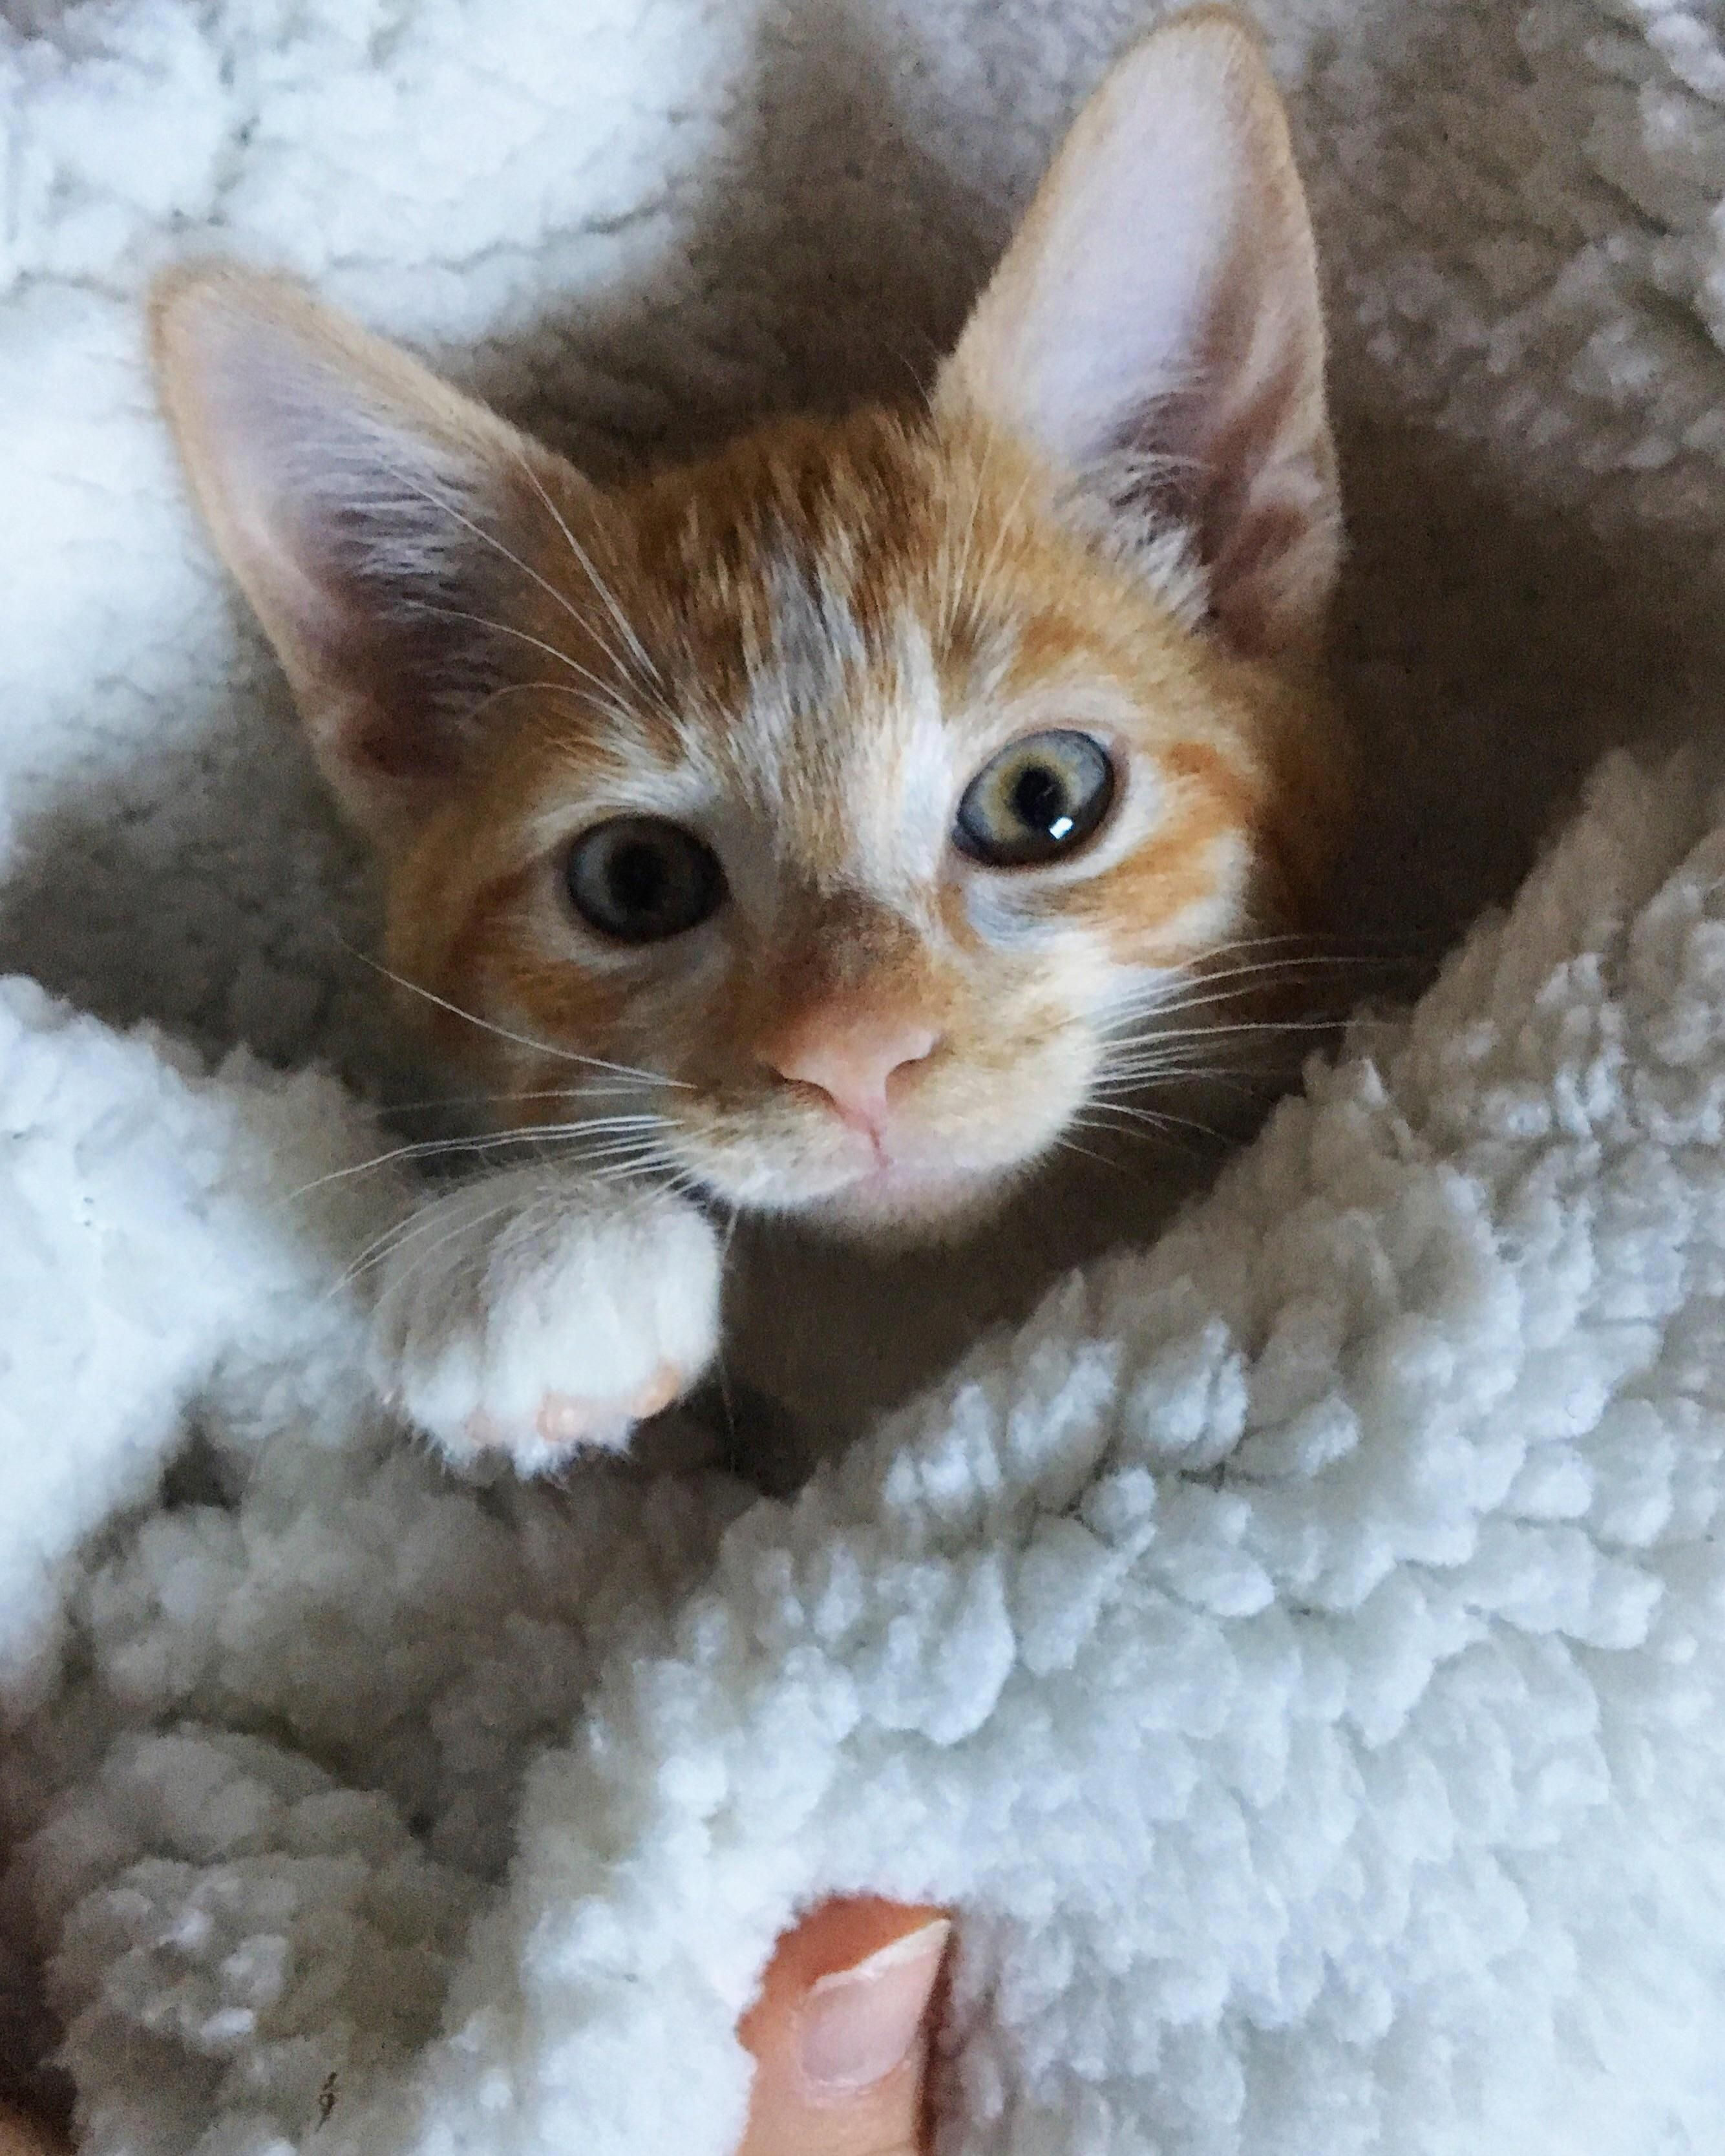 Adorable Kittens Coloring Pages Kittens Cutest Cute Baby Animals Cute Cats And Kittens